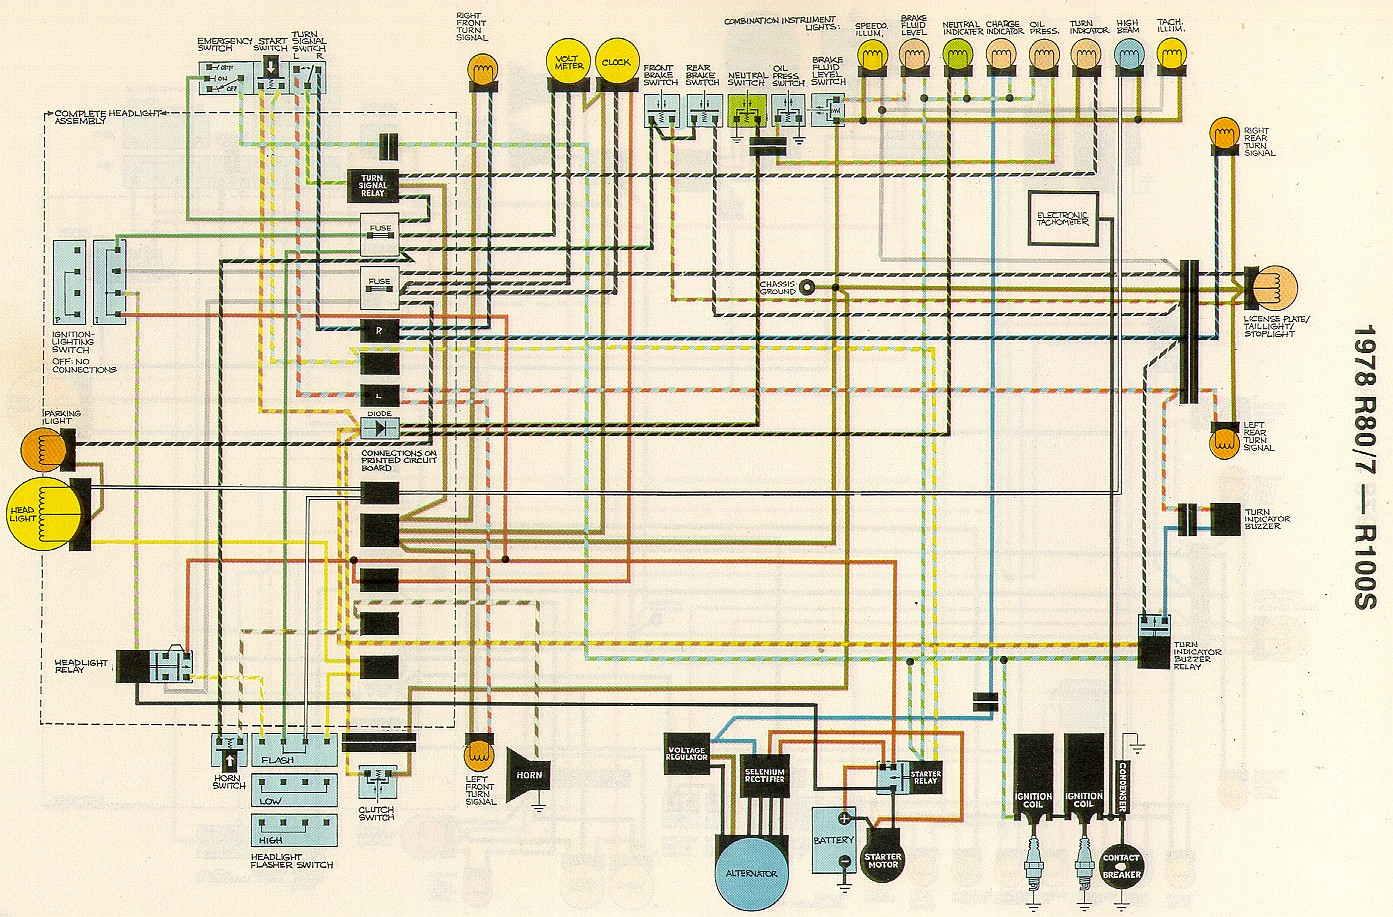 1975 bmw 2002 wiring diagram ford 800 12 volt conversion r100rs change your idea with